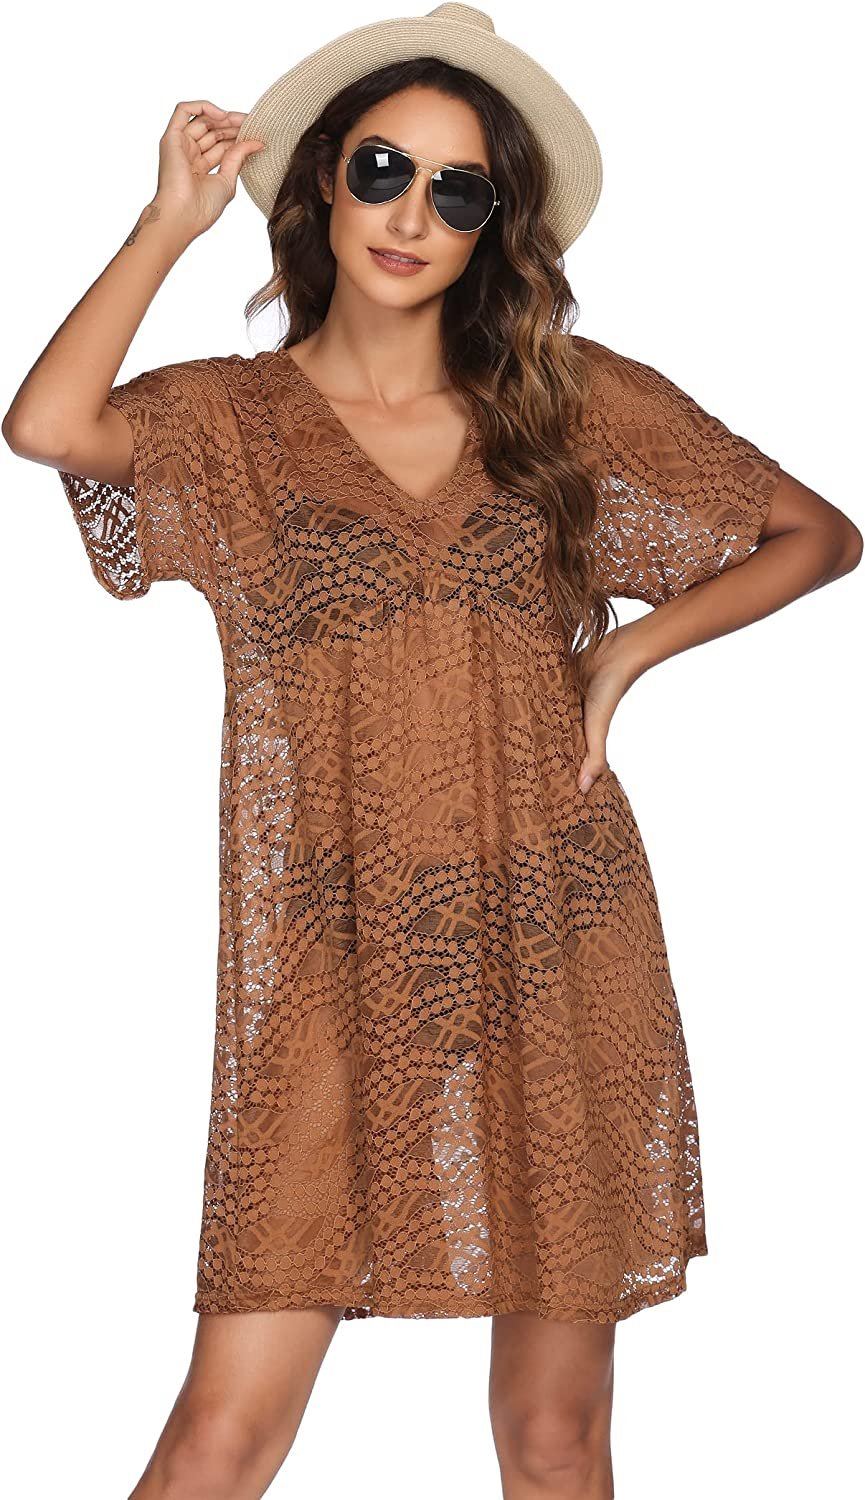 Ekouaer Women Swimsuit Cover Ups Batwing Sleeve Sheer Lace Cover Up Bathing Suit Beach Dress